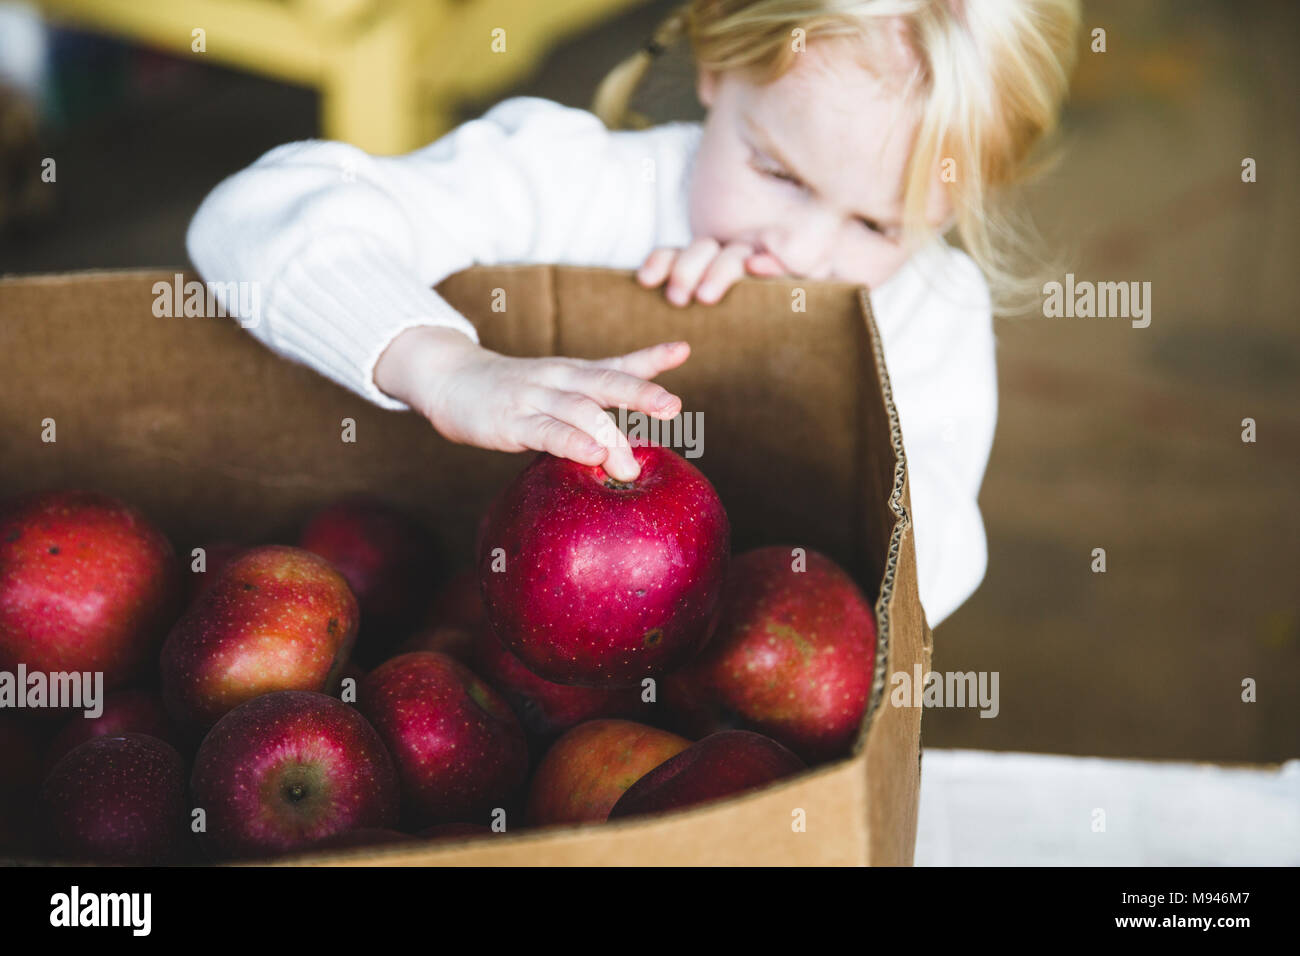 Girl picking up apple from box - Stock Image